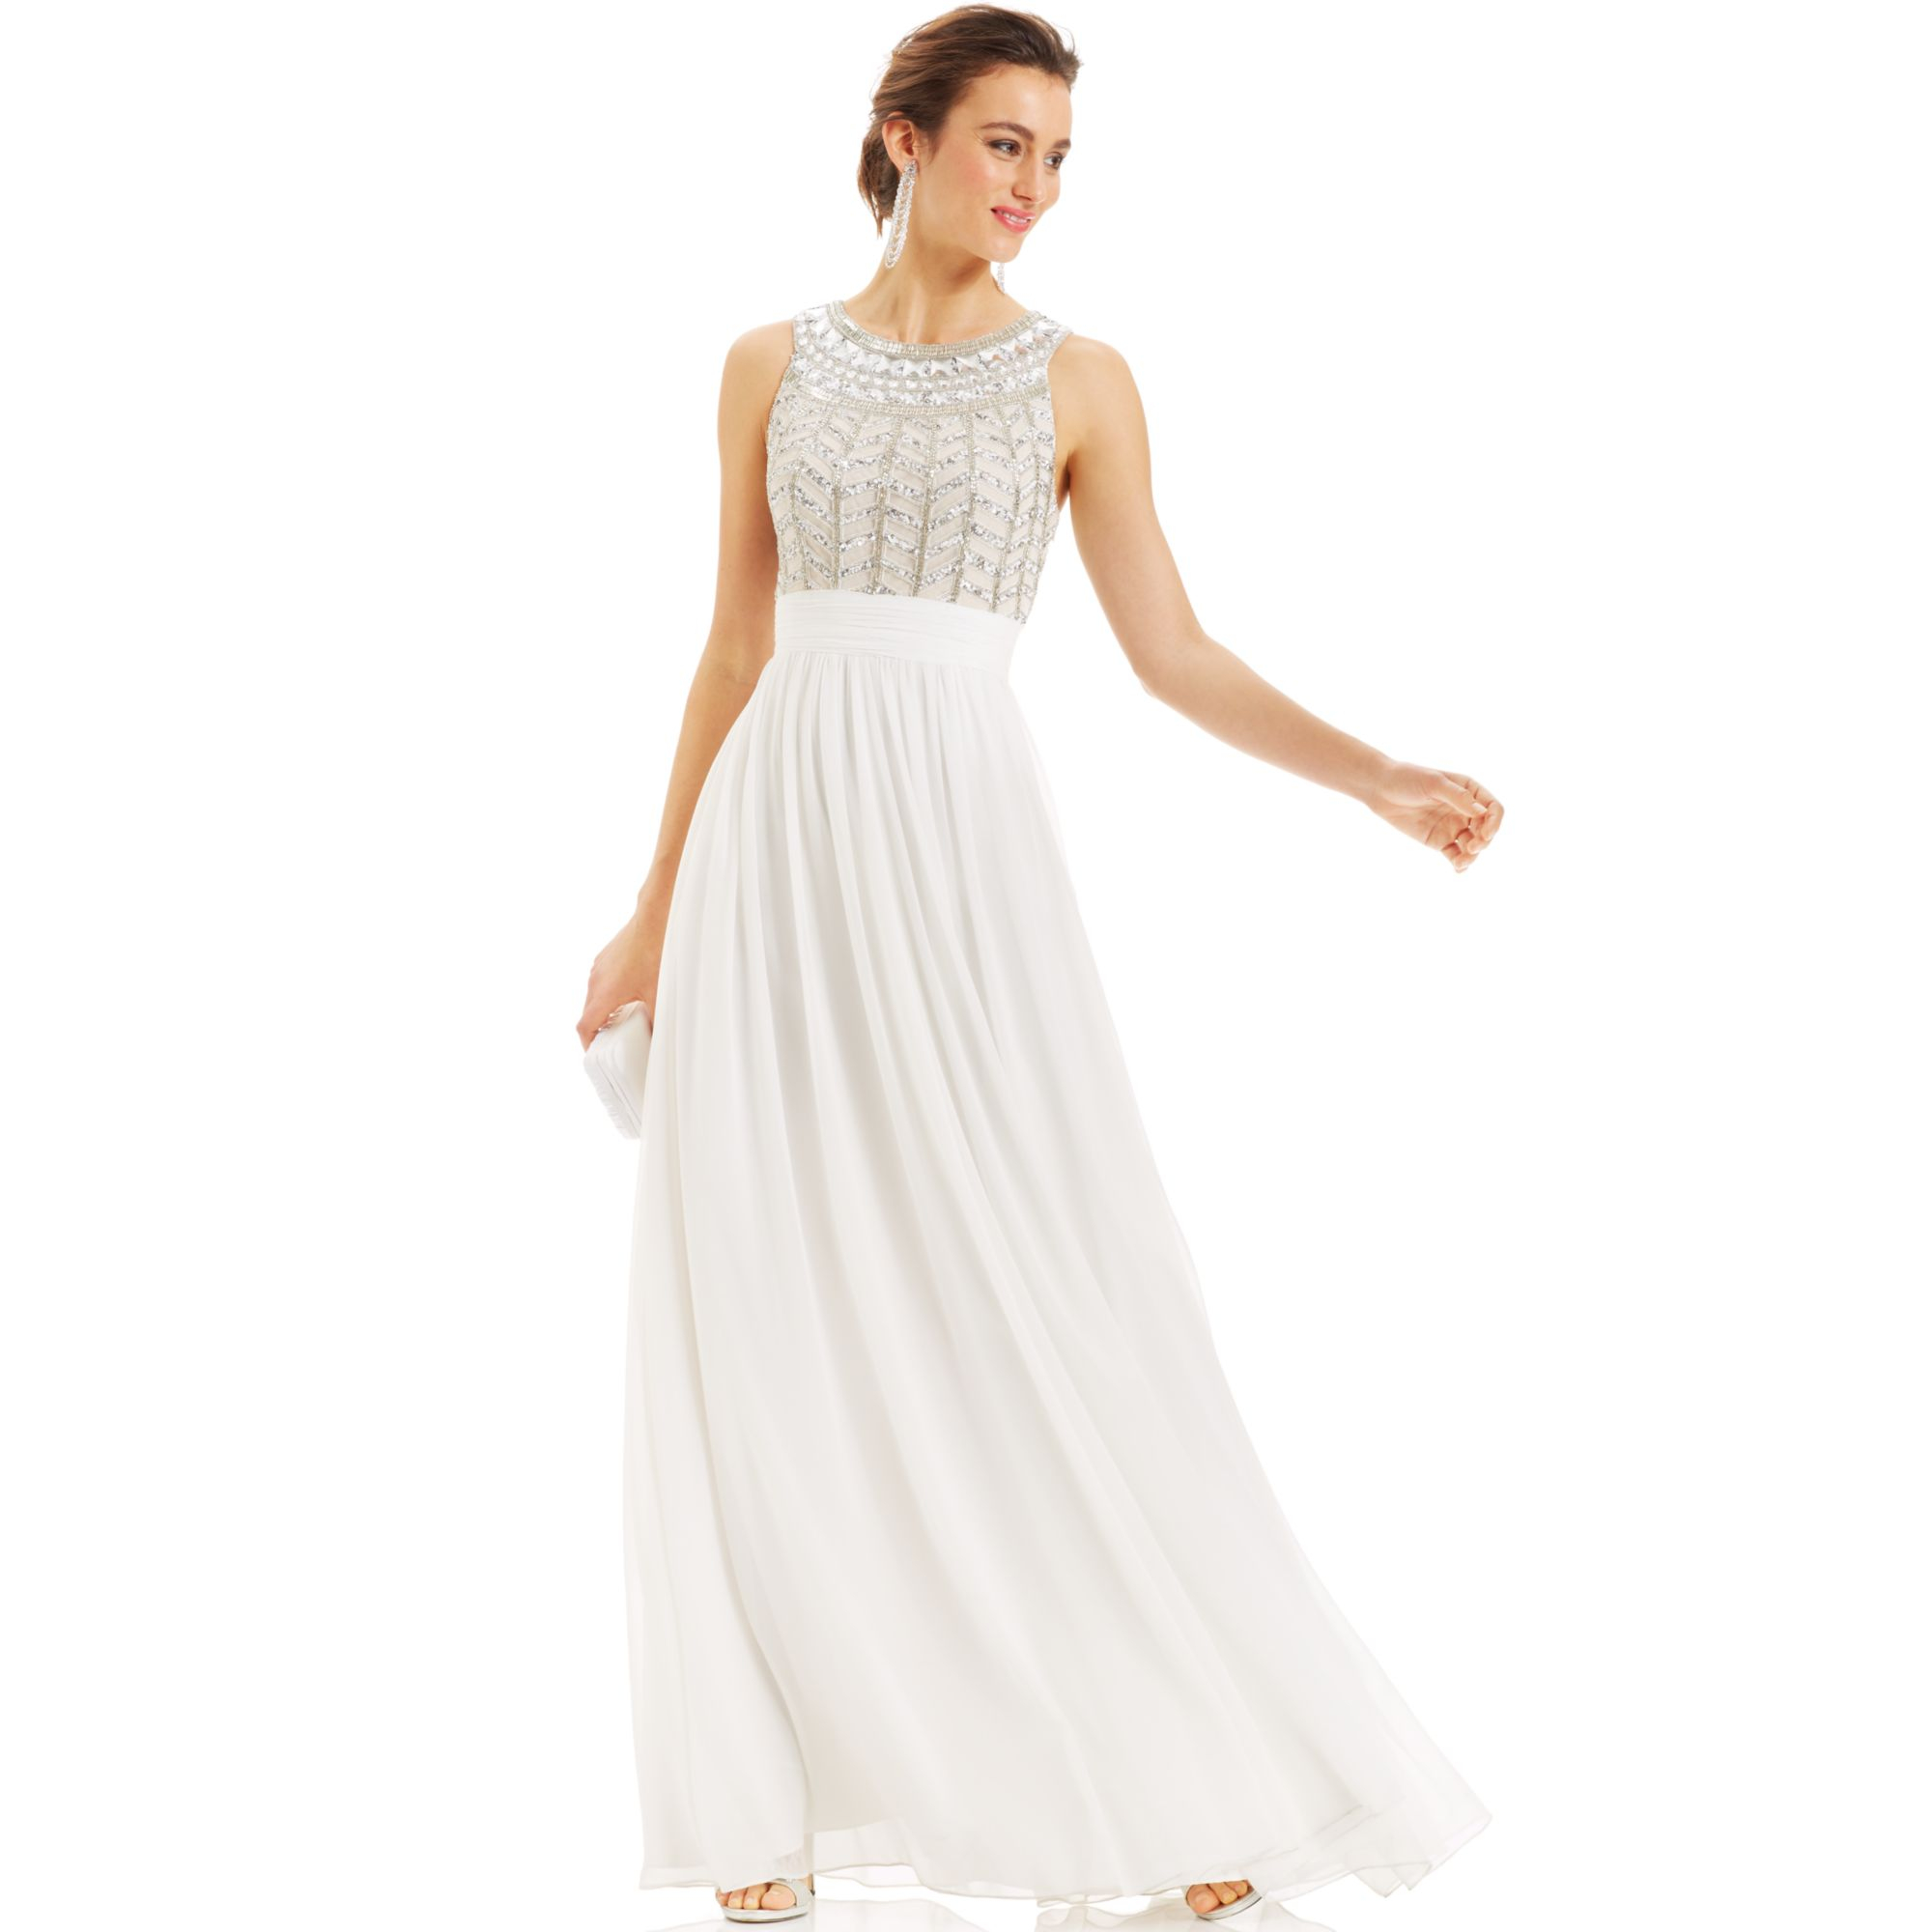 Lyst Js Collections Dress Sleeveless Beaded Empirewaist Gown In White